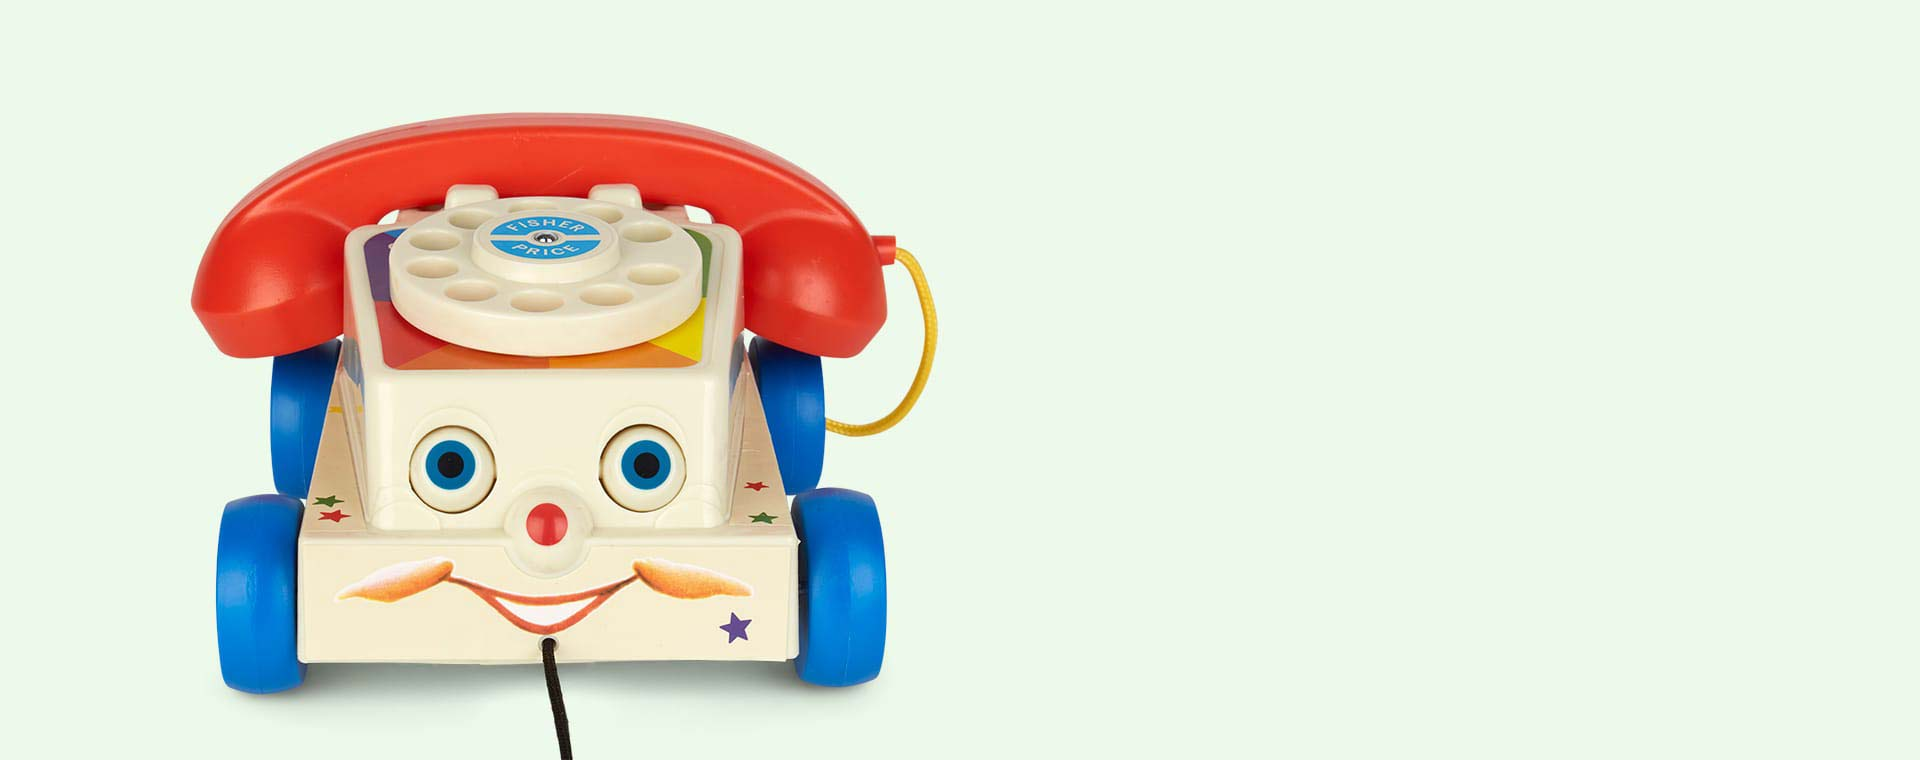 hight resolution of multi fisher price classic toys classic chatter phone